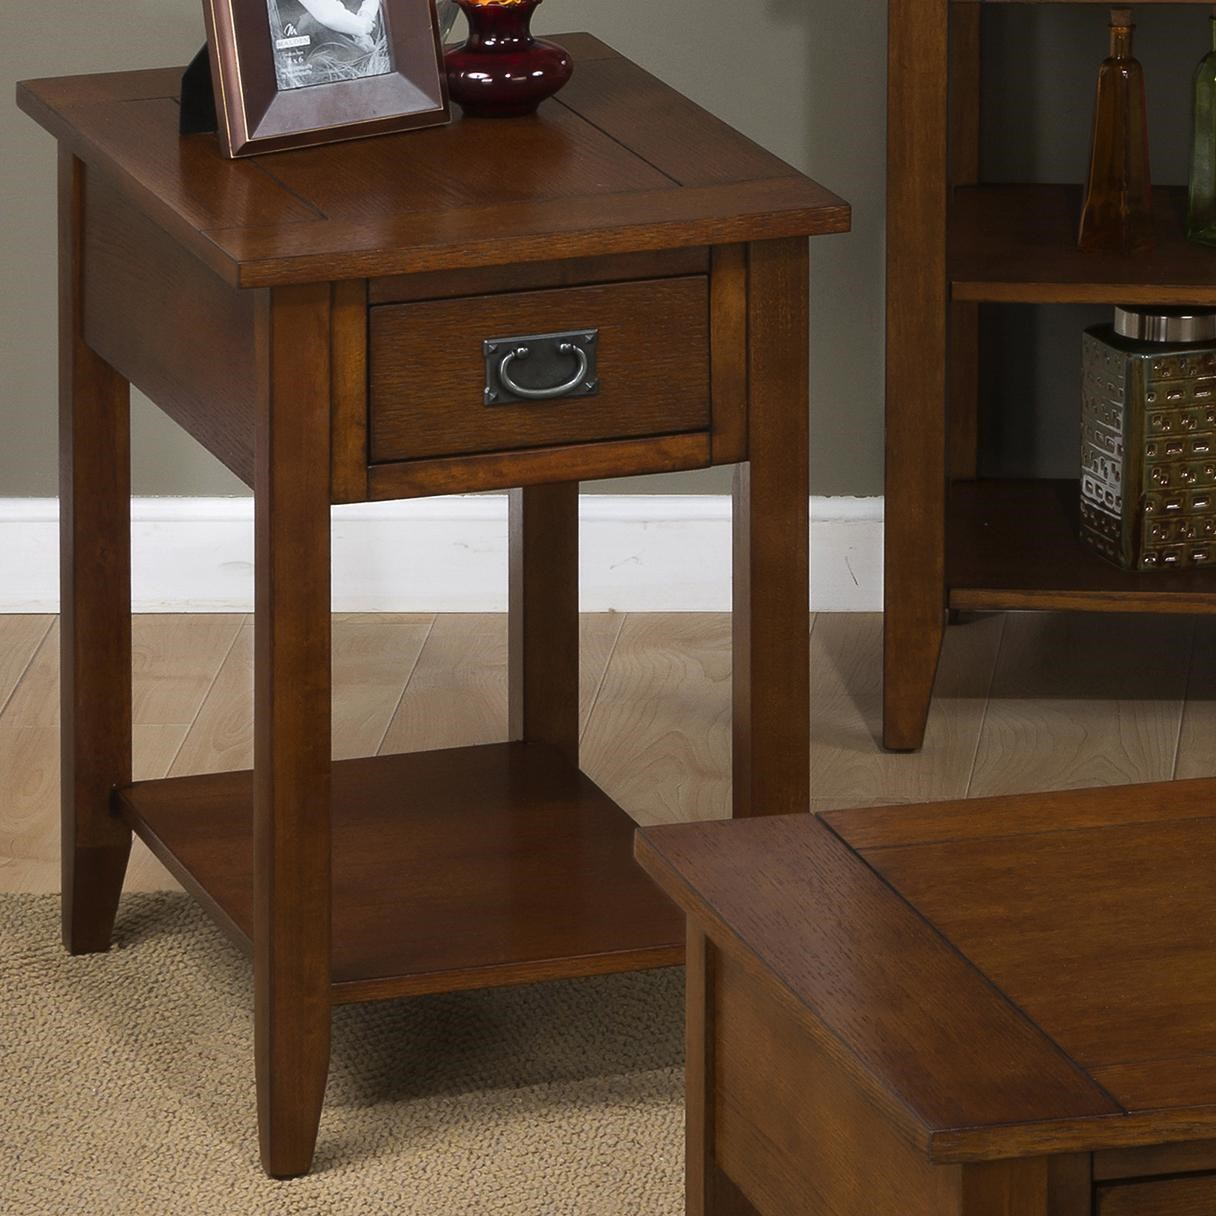 Jofran Mission Oak Chairside Table with 1 Drawer and 1